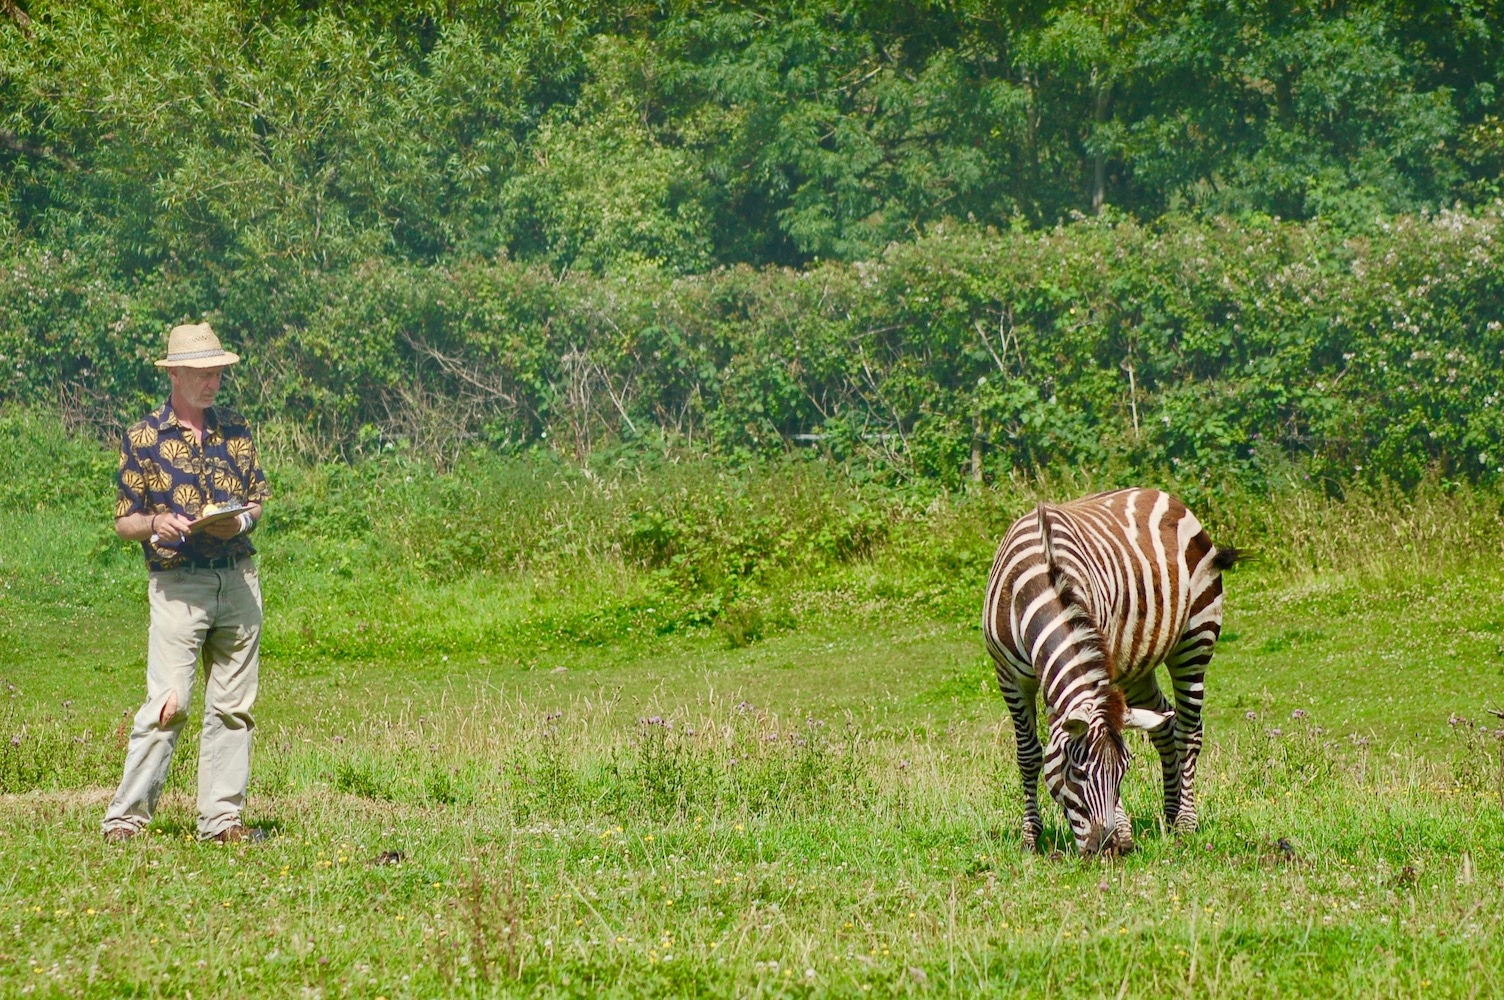 Biologist observes zebra in Britain